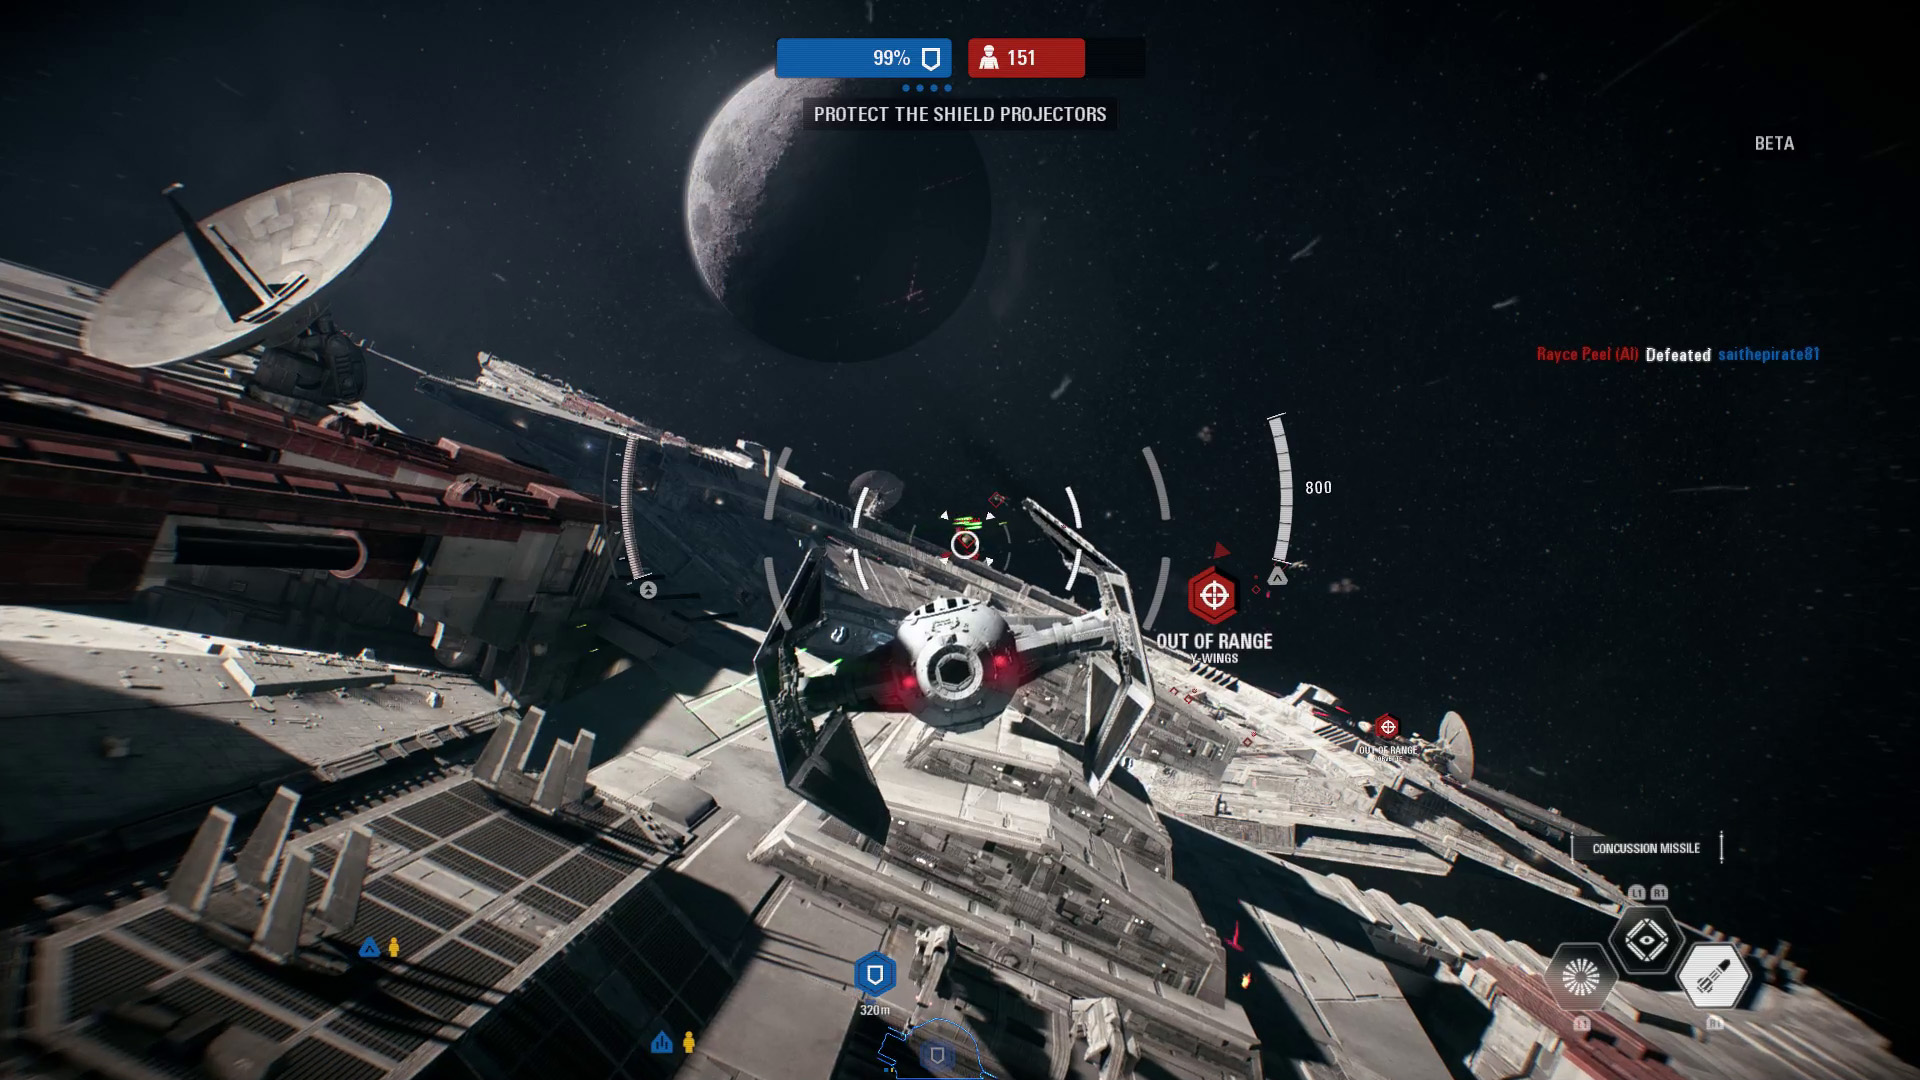 Star Wars: Battlefront 2 beta now available to all